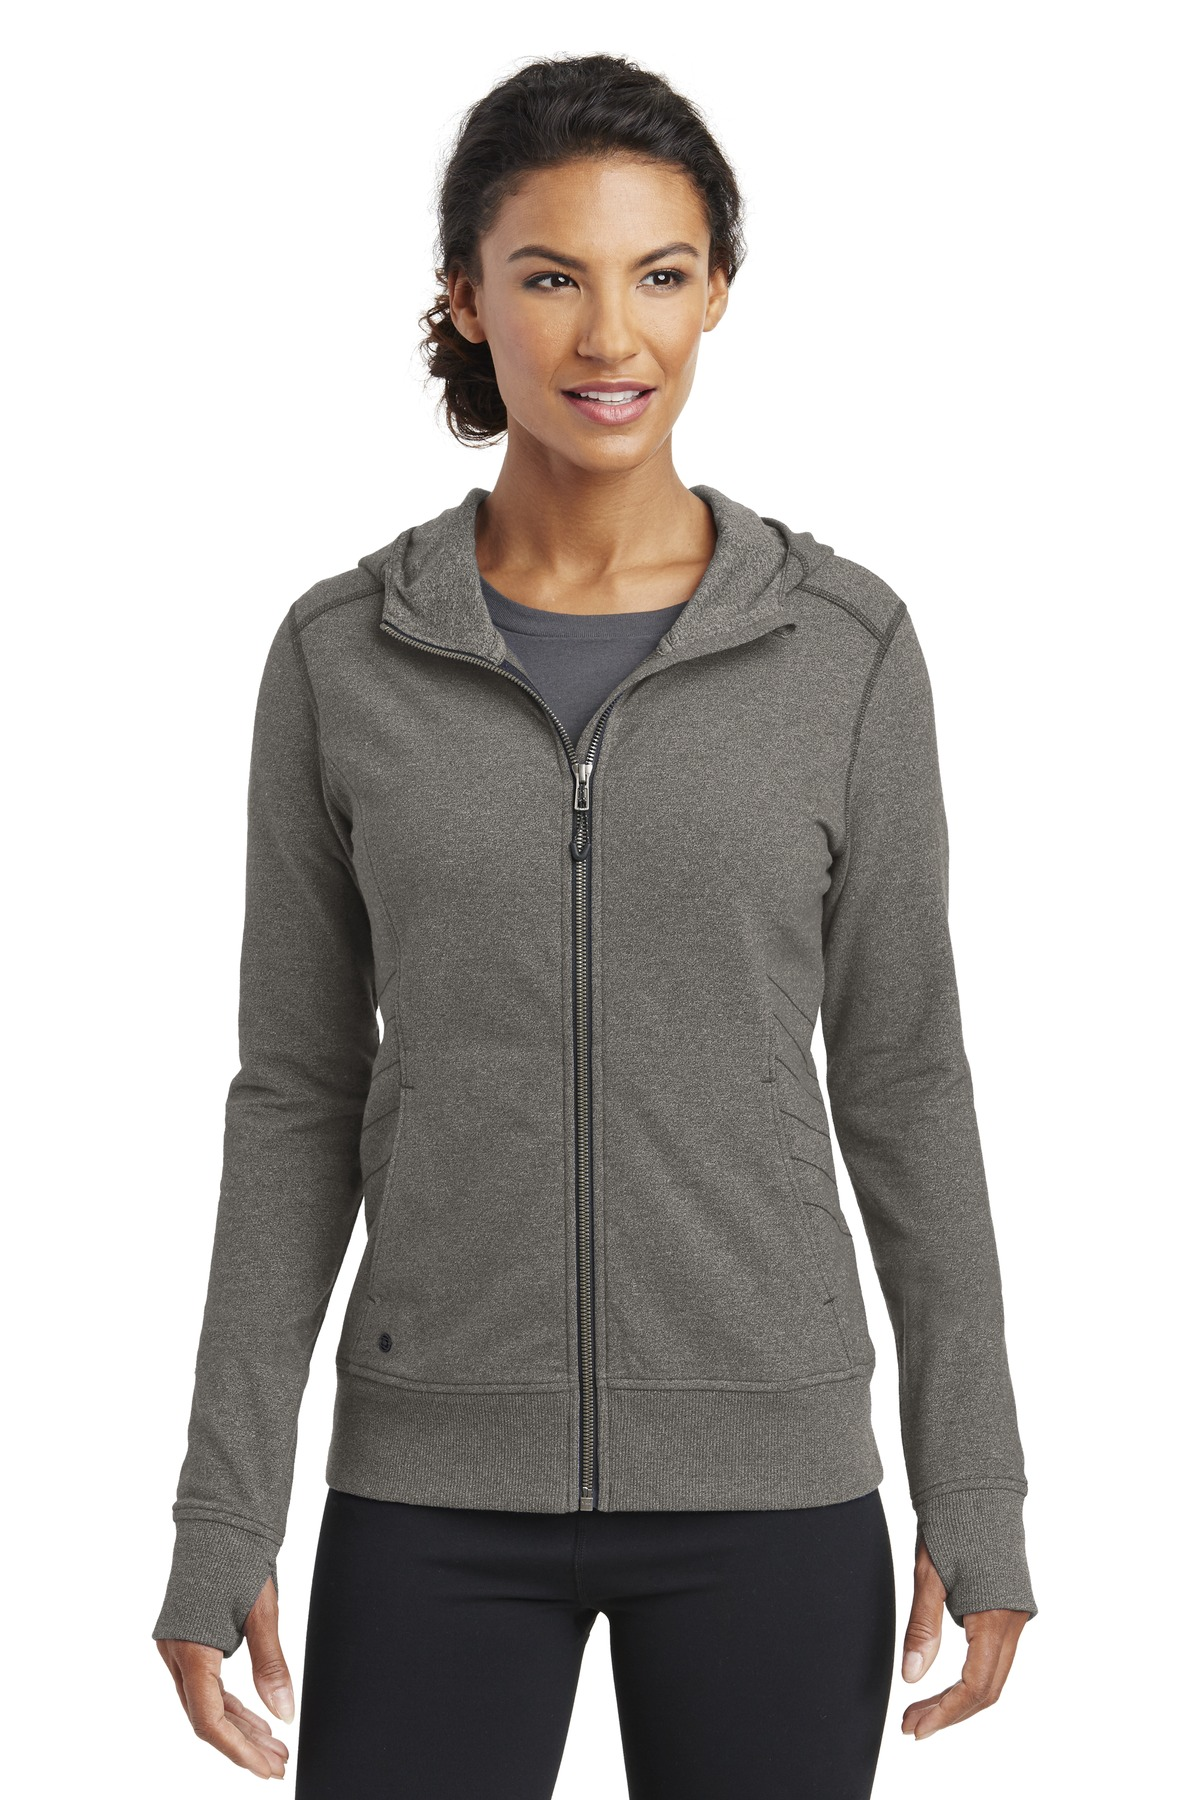 OGIO ®  ENDURANCE Ladies Cadmium Jacket. LOE502 - Gear Grey